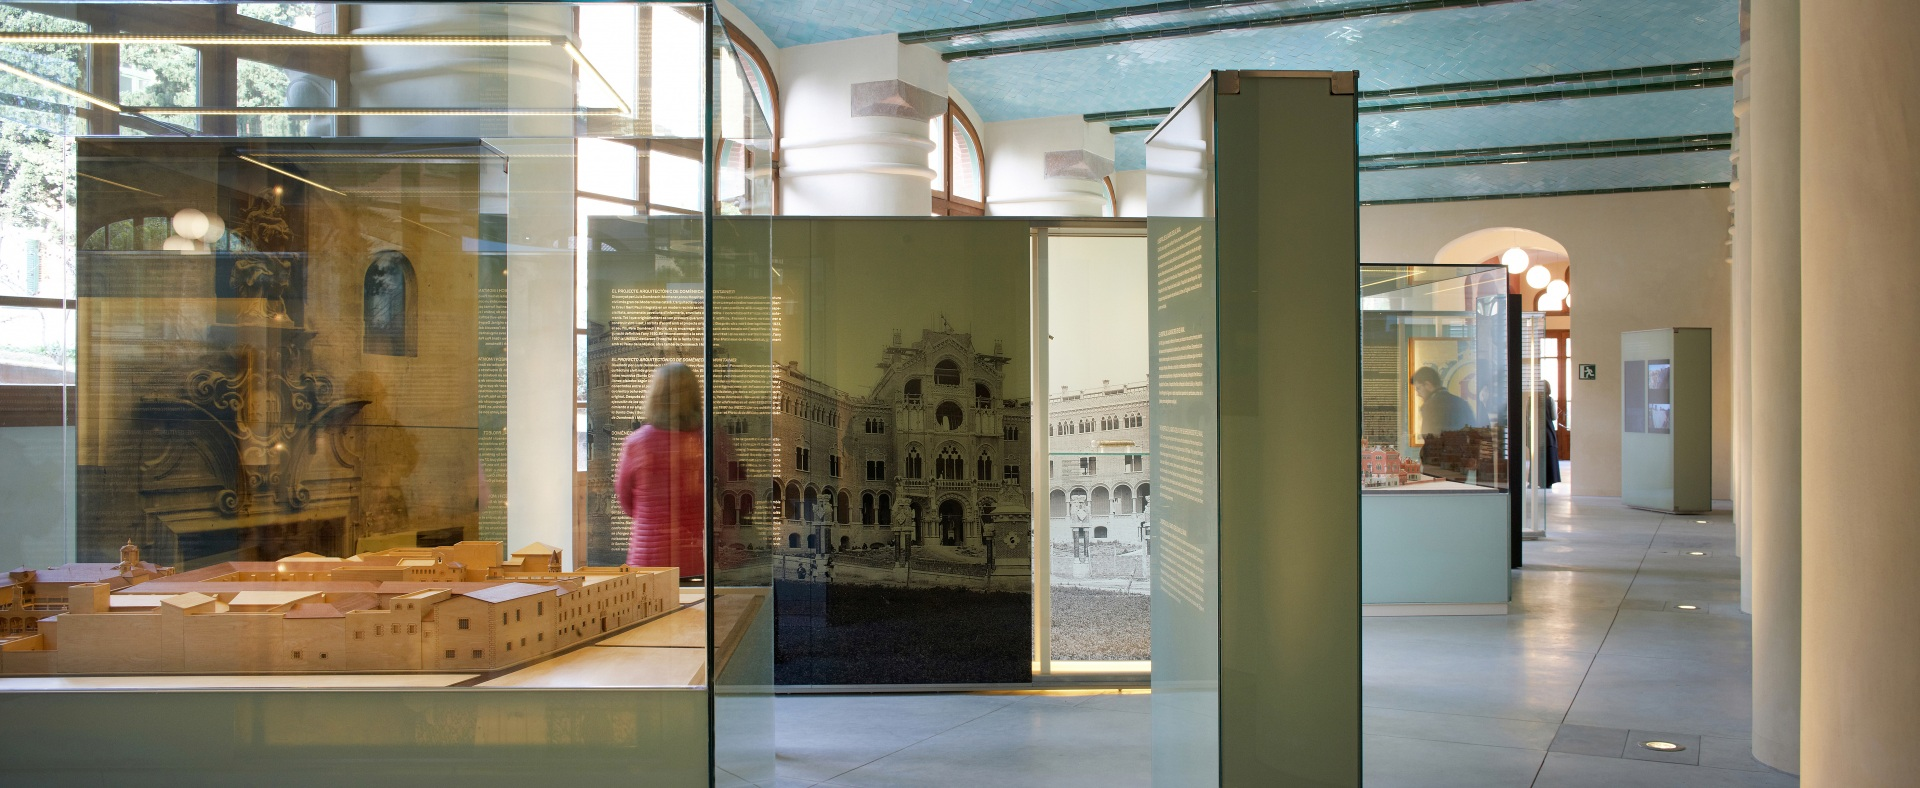 Hospital of the Santa Creu i Sant Pau. Showcase containing an old building model and panels with pictures of the new building.